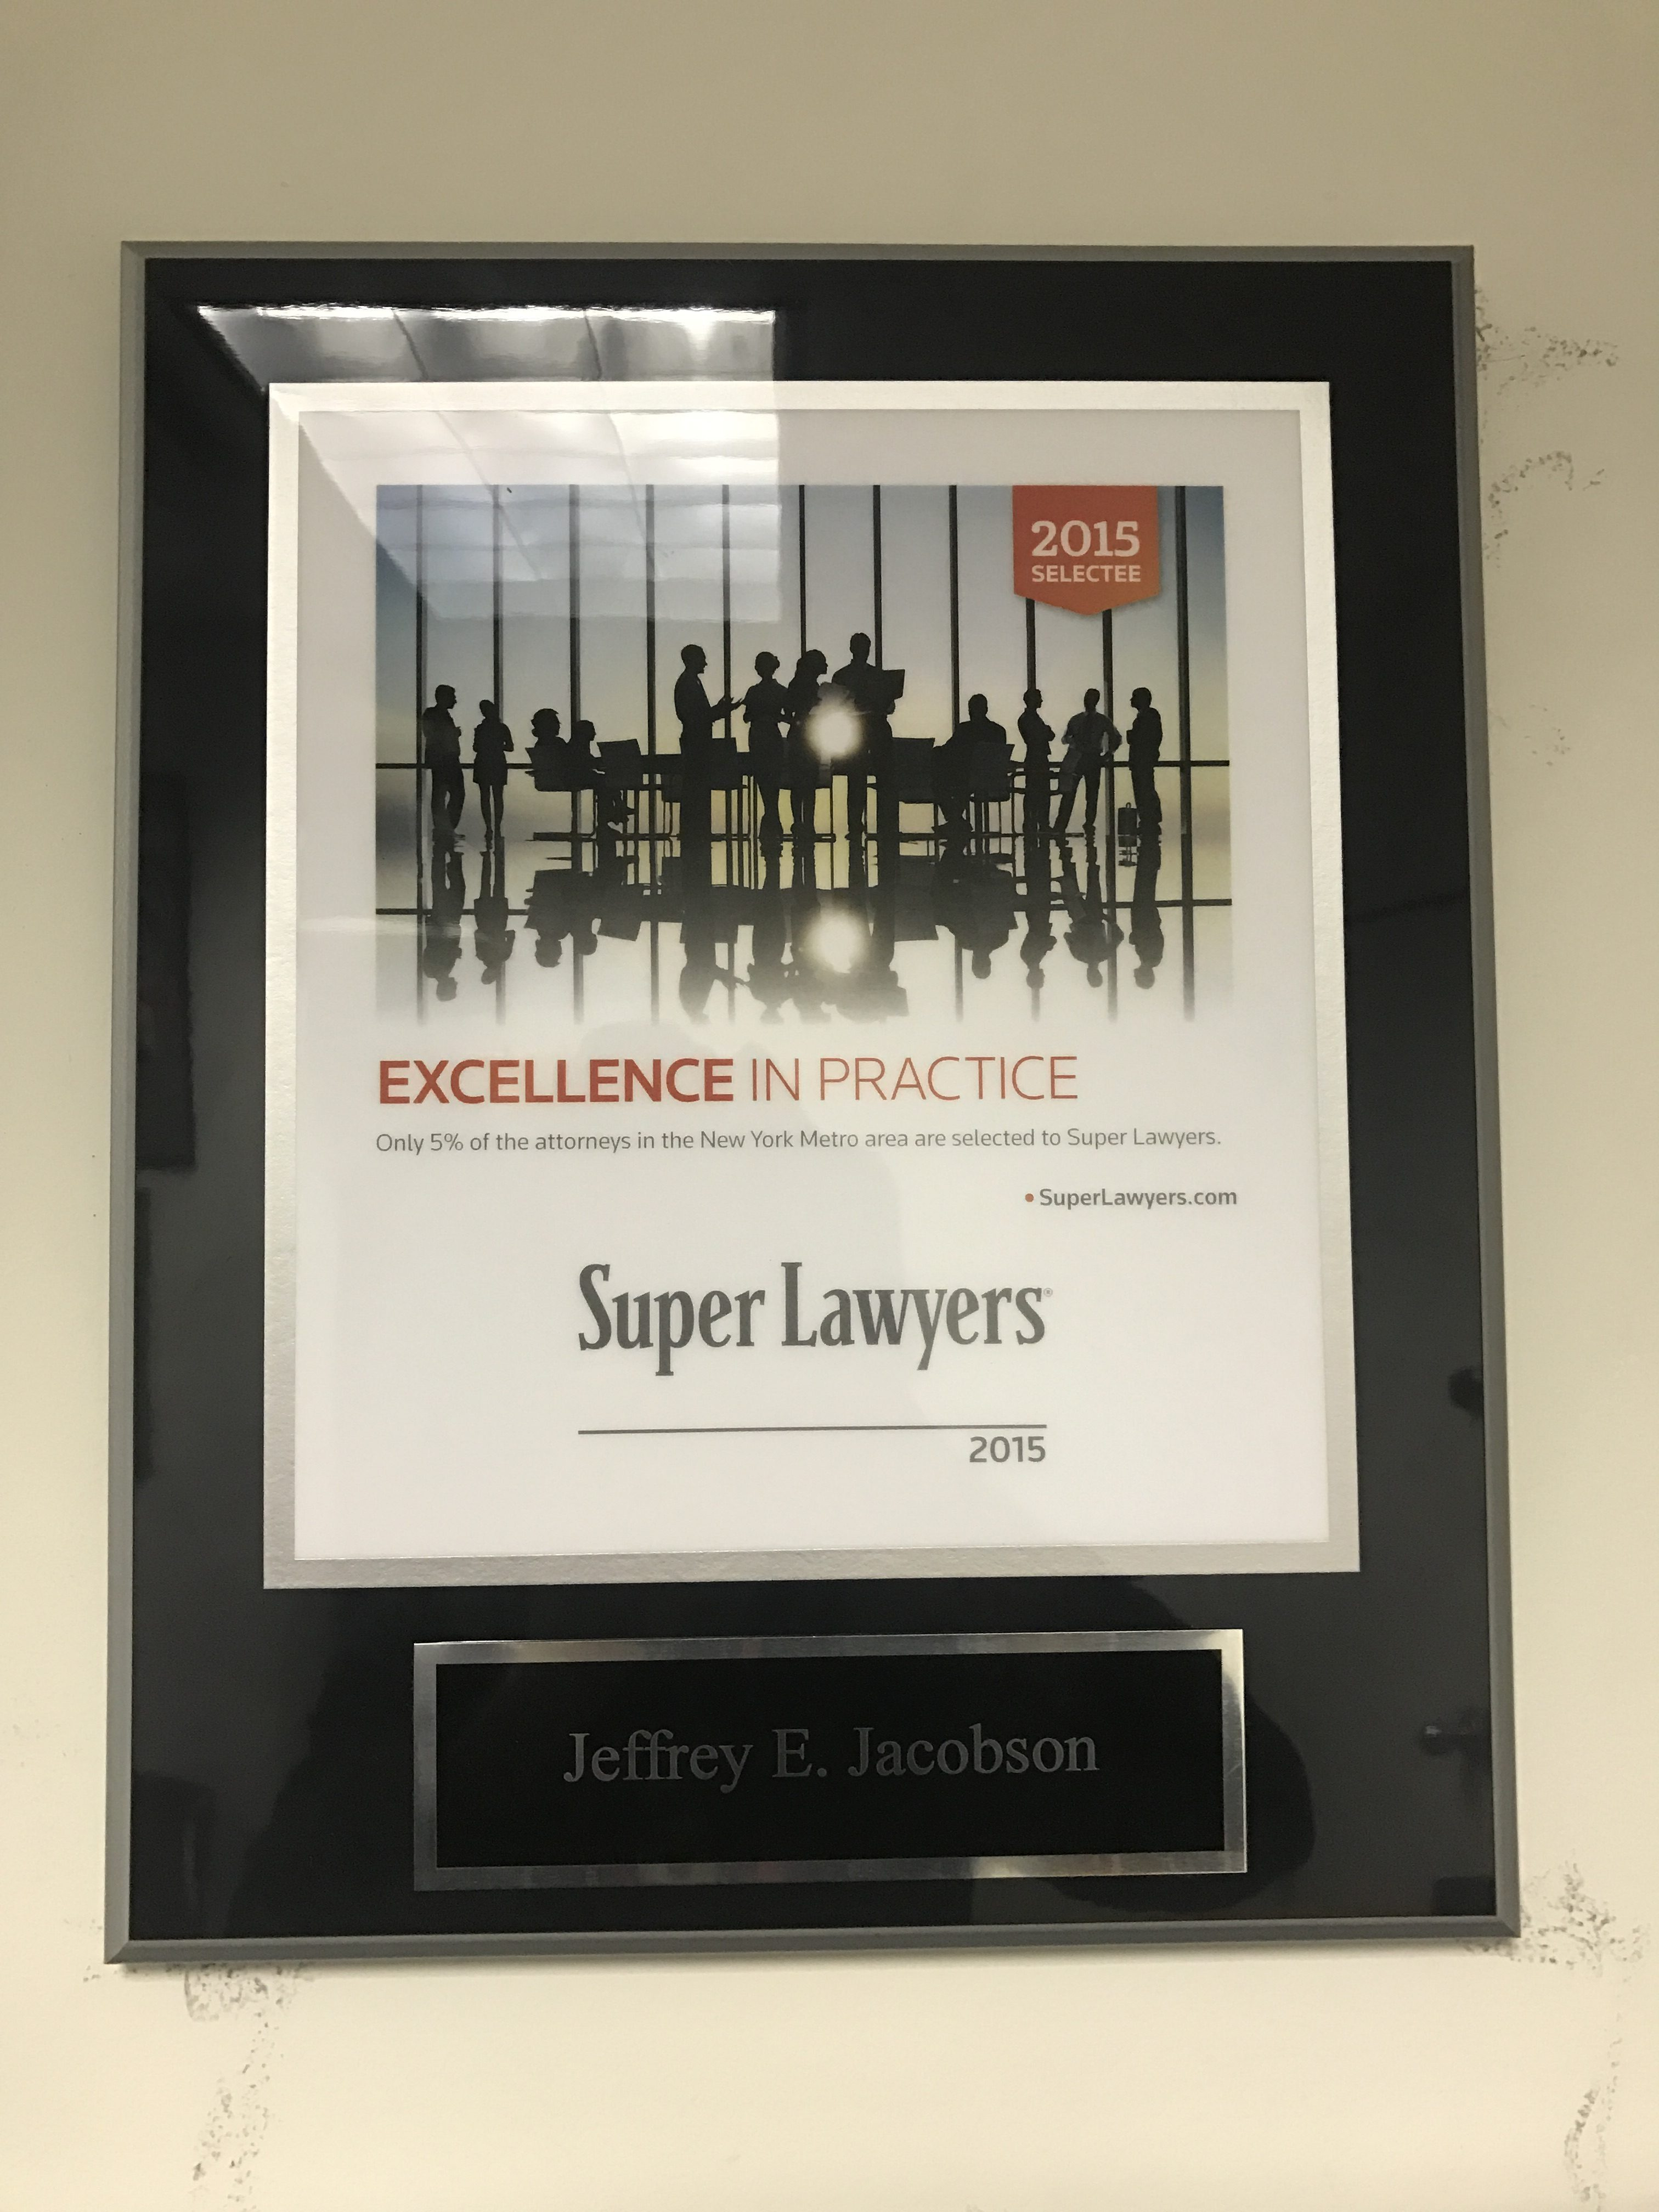 Jeffrey E. Jacobson selected as SuperLawyer